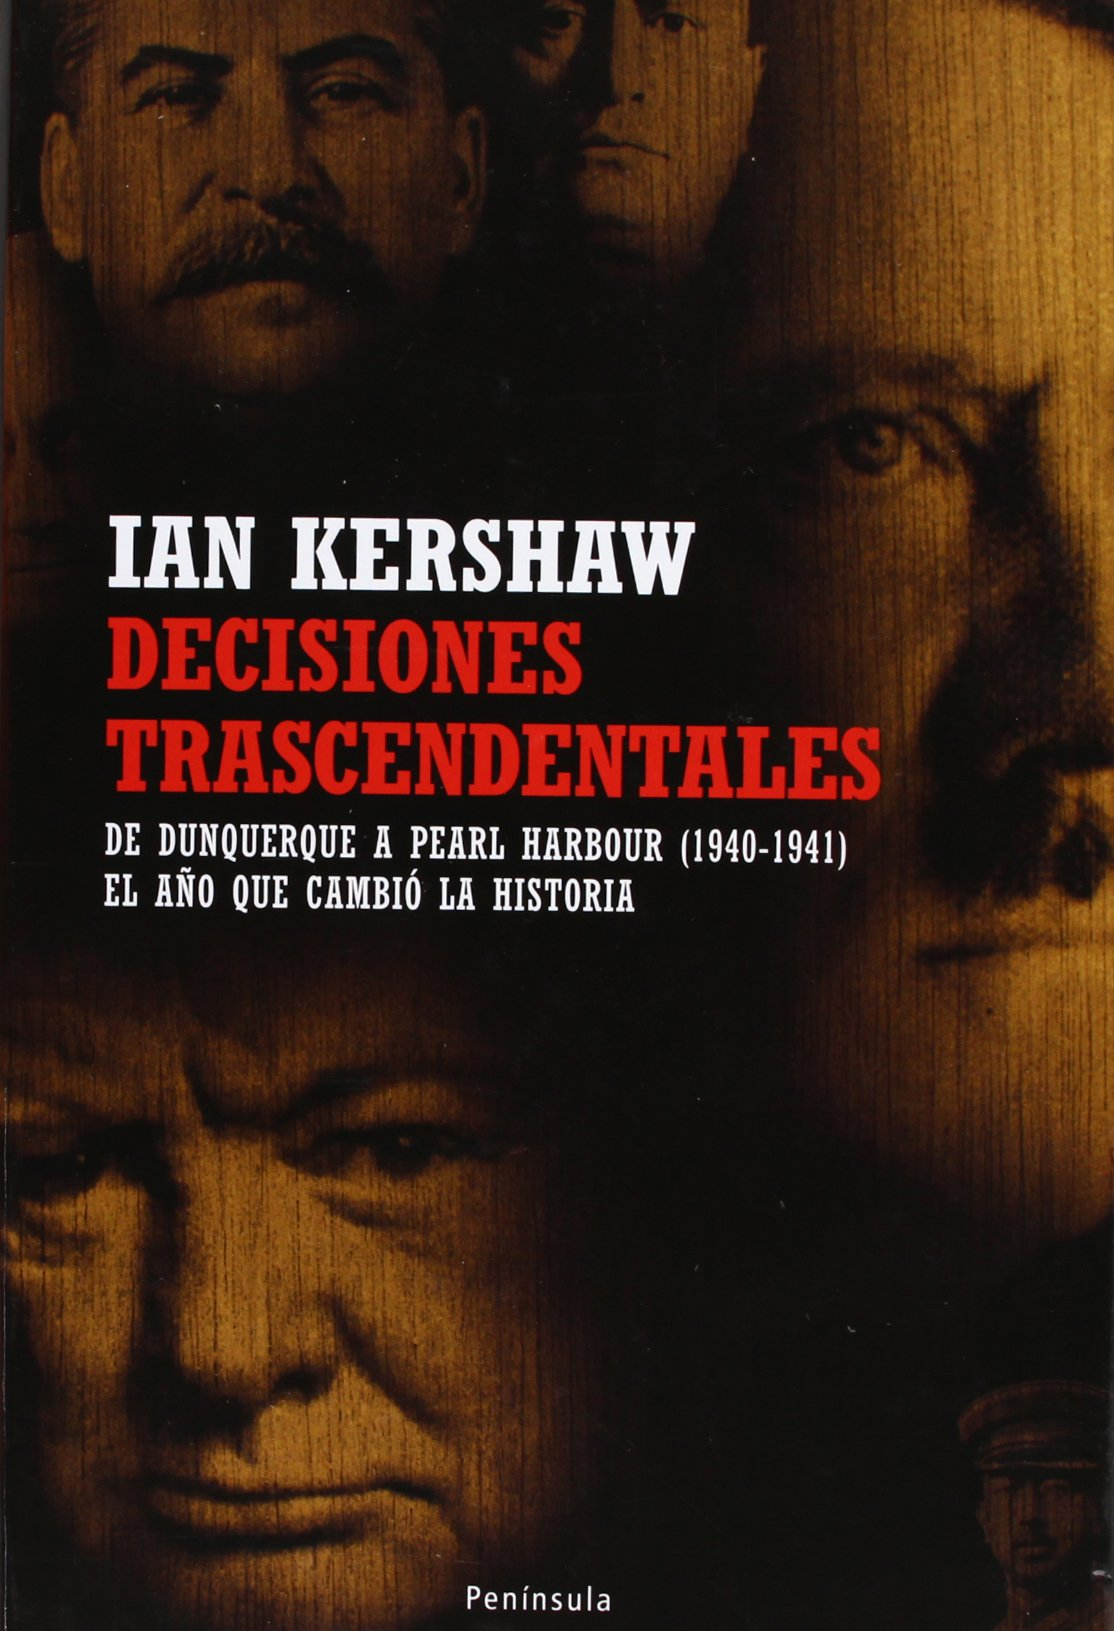 decisiones transcentales (td) (Spanish) Hardcover – 2013